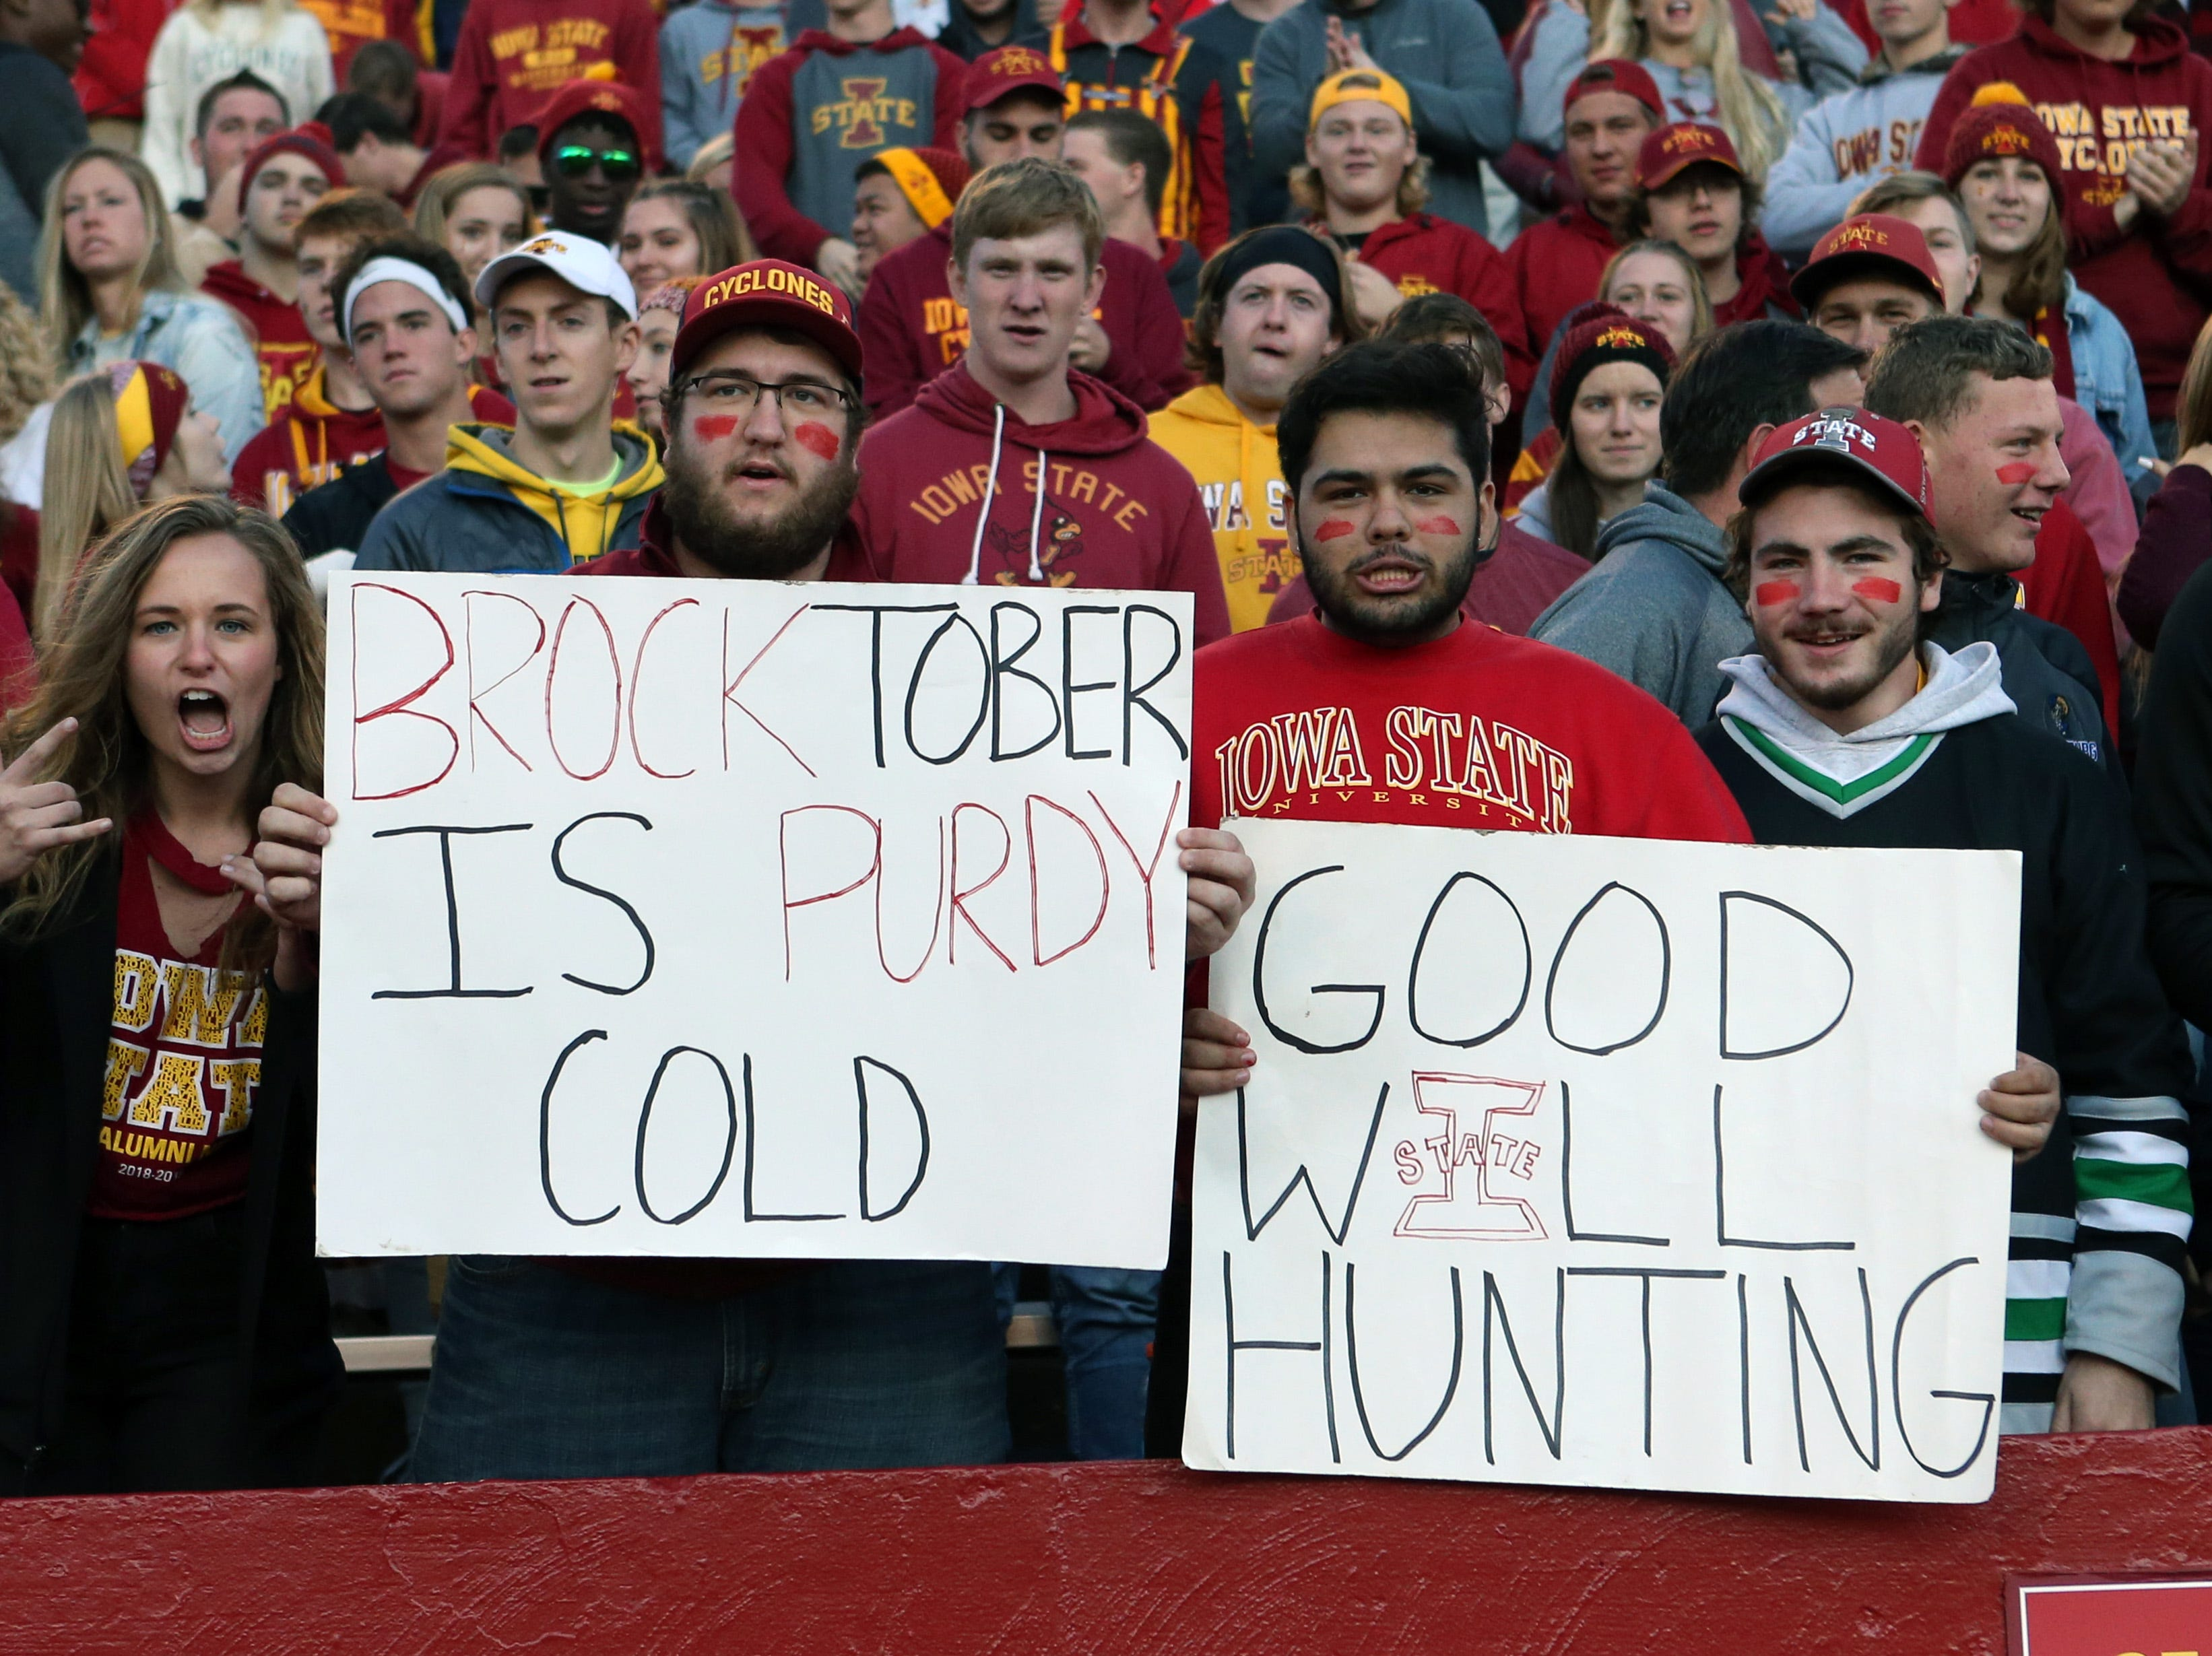 Week 7: Iowa State Cyclones fans show their support for quarterback Brock Purdy and poke fun at West Virginia Mountaineers QB Will Grier.